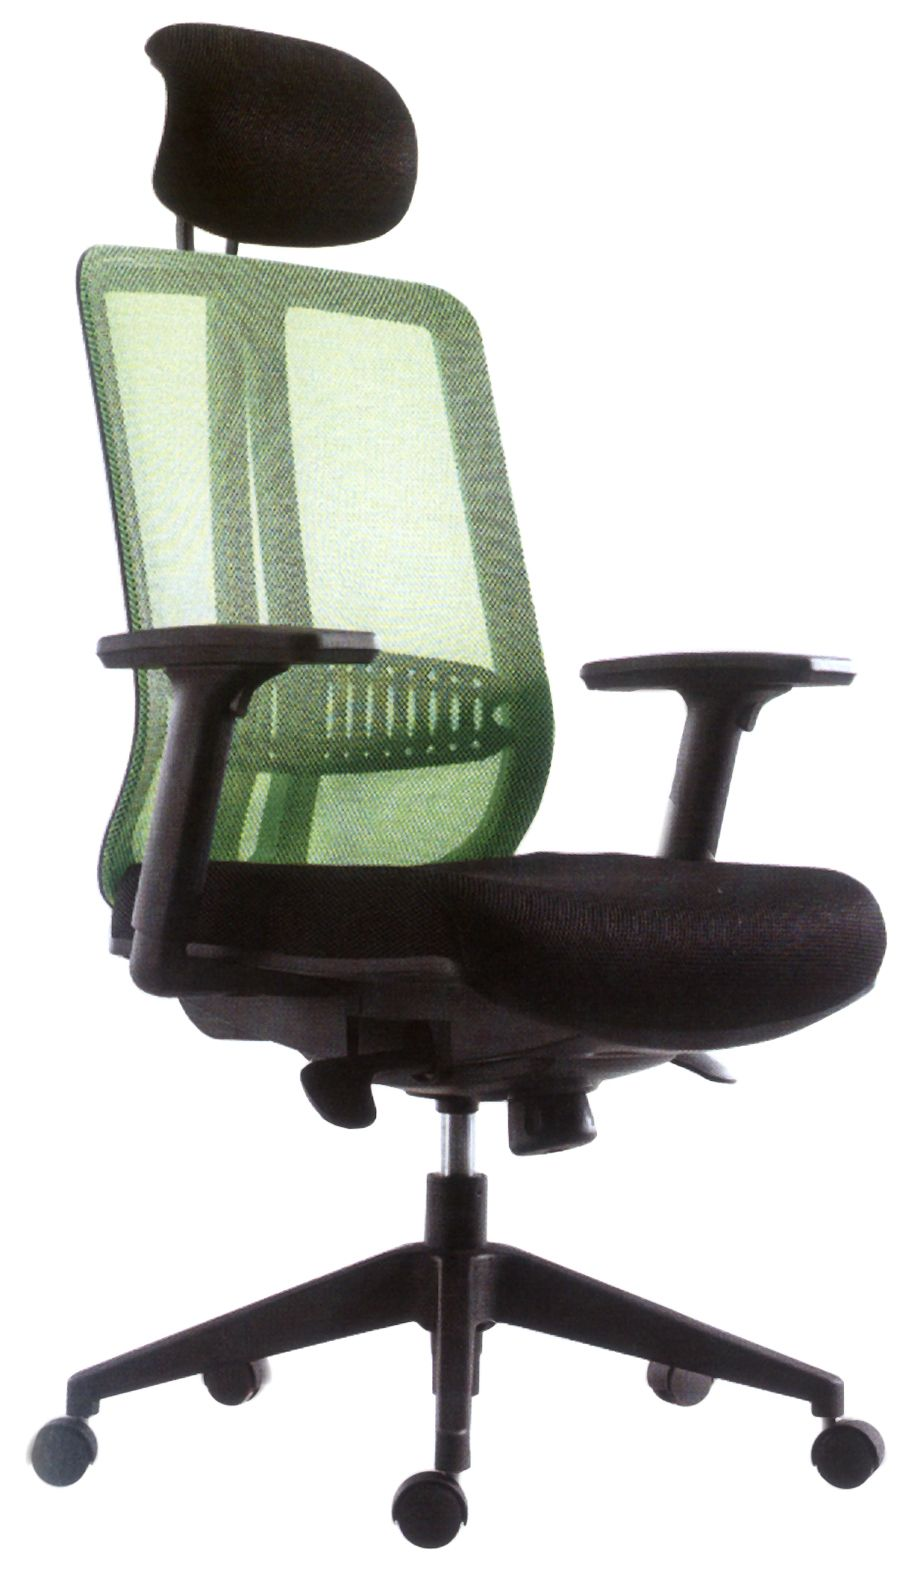 Image Result For Gaming Chair Daraz